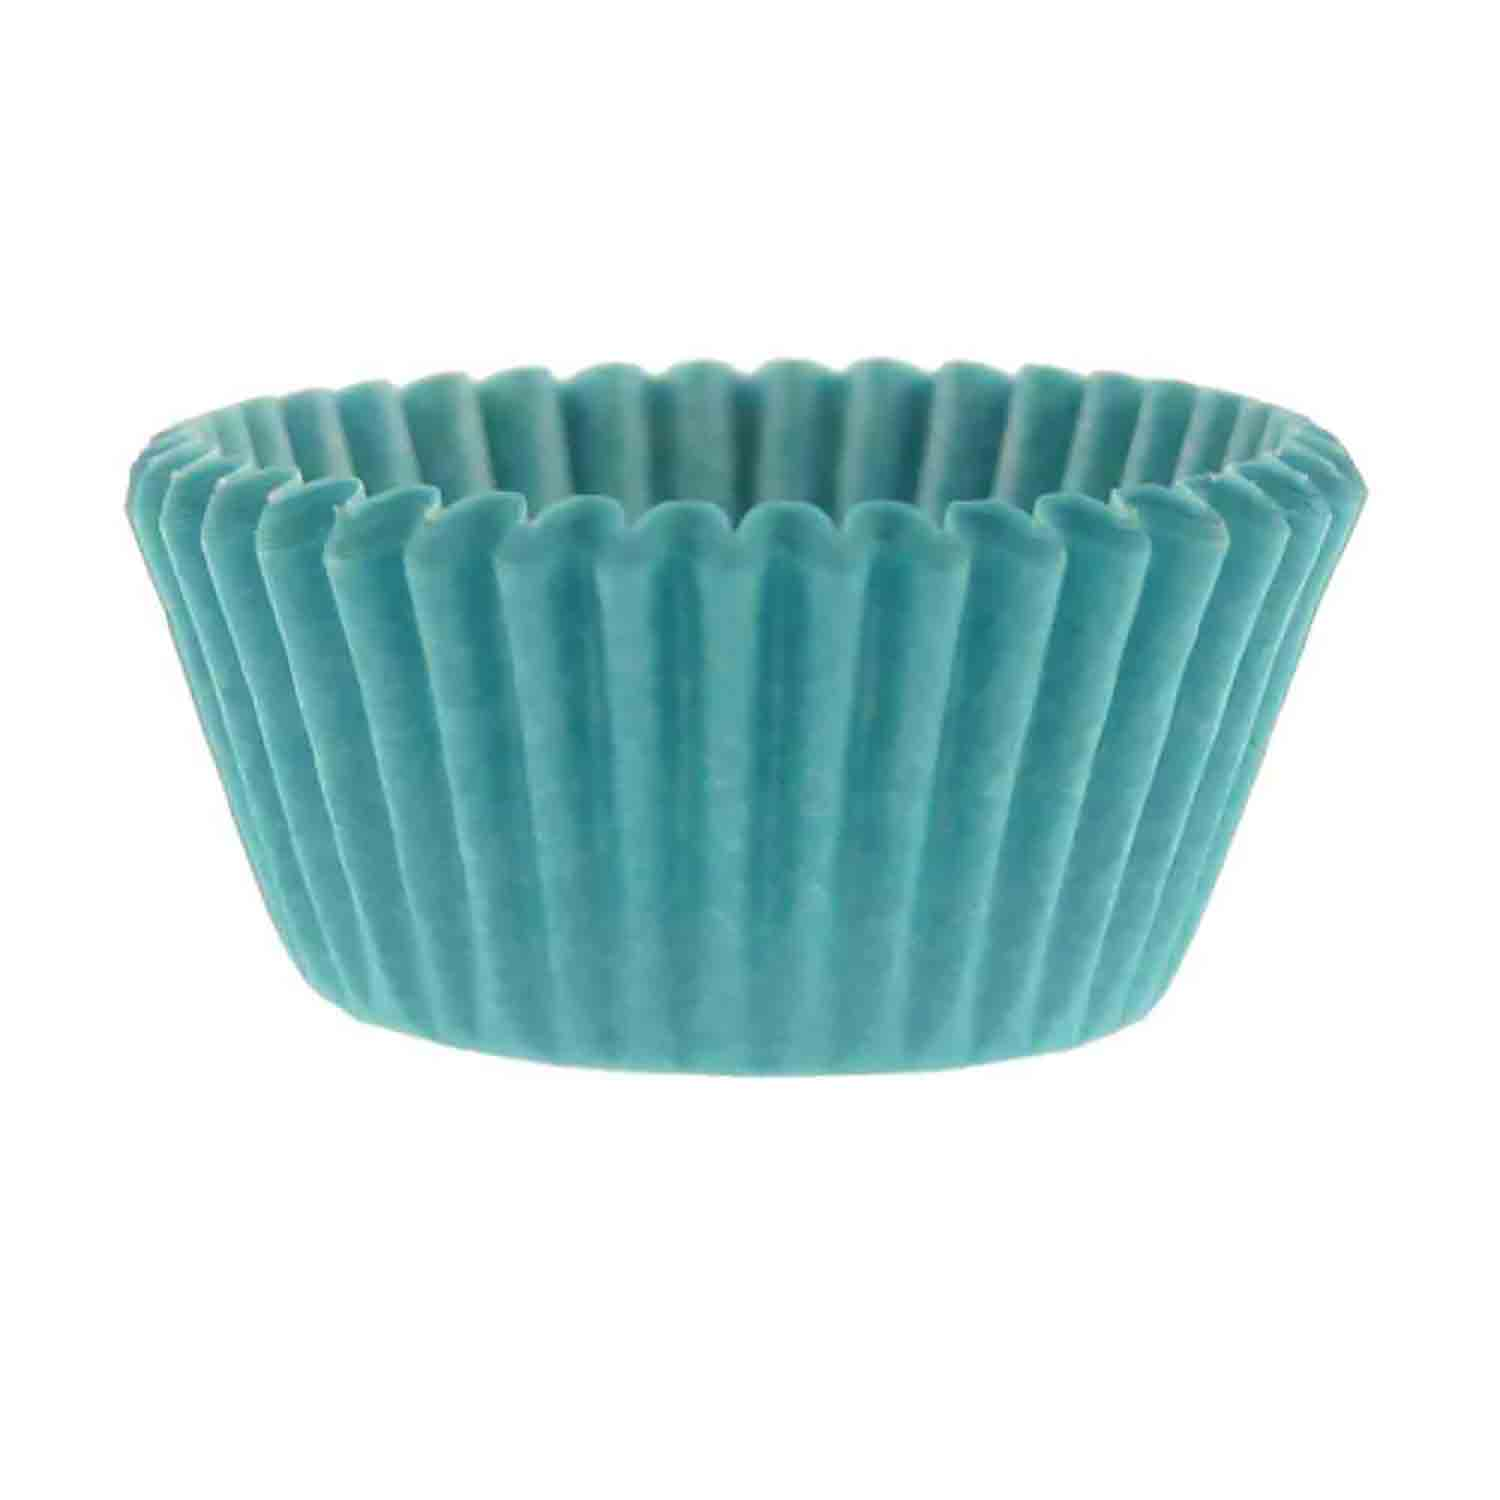 Turquoise Mini Baking Cups